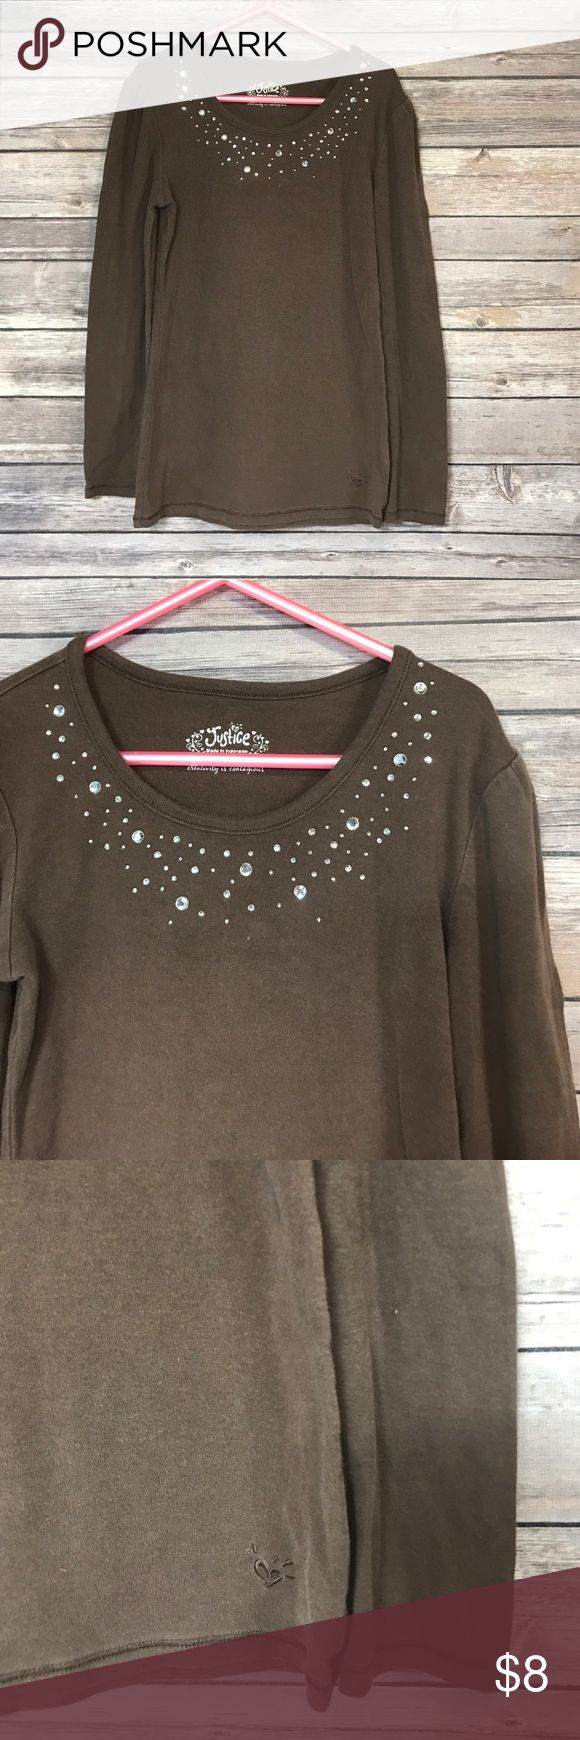 💜Sz XS (8) Justice shirt Brown with jeweled neckline. Justice Shirts & Tops Tees - Long Sleeve